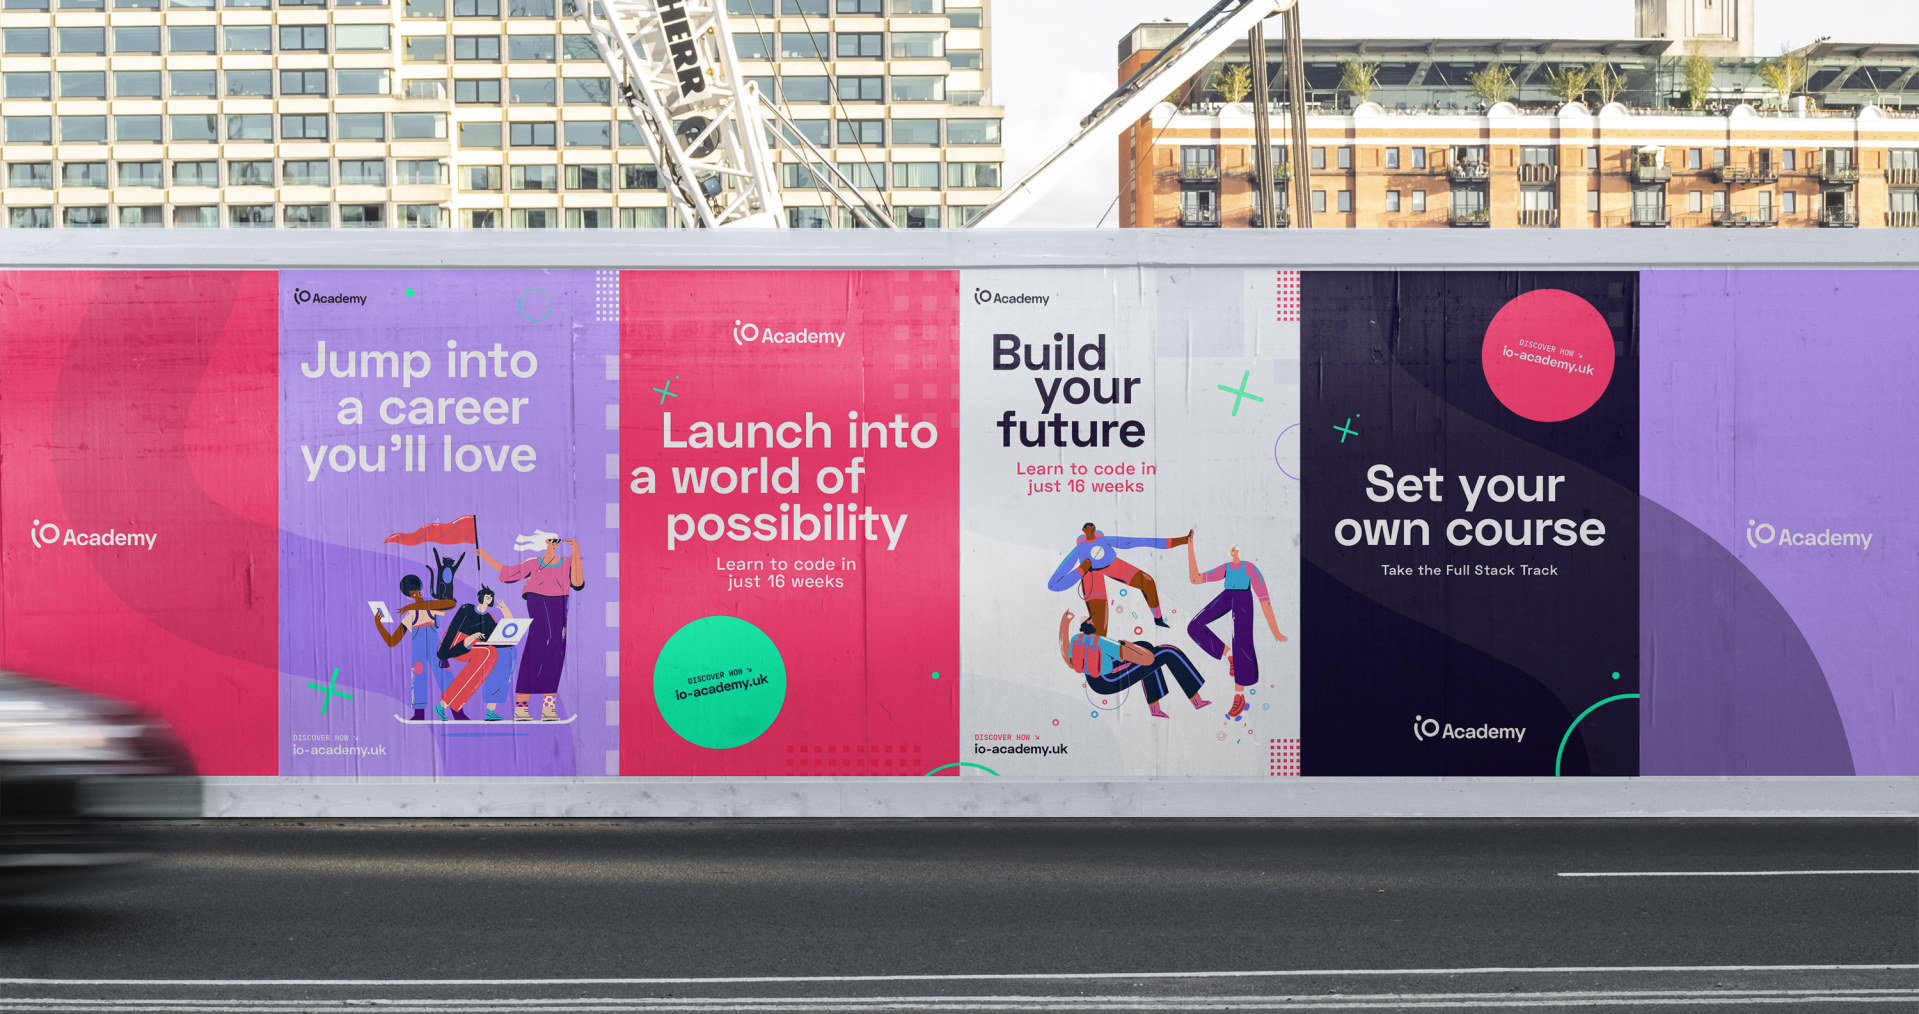 Hoardings designs for iO Academy campaign